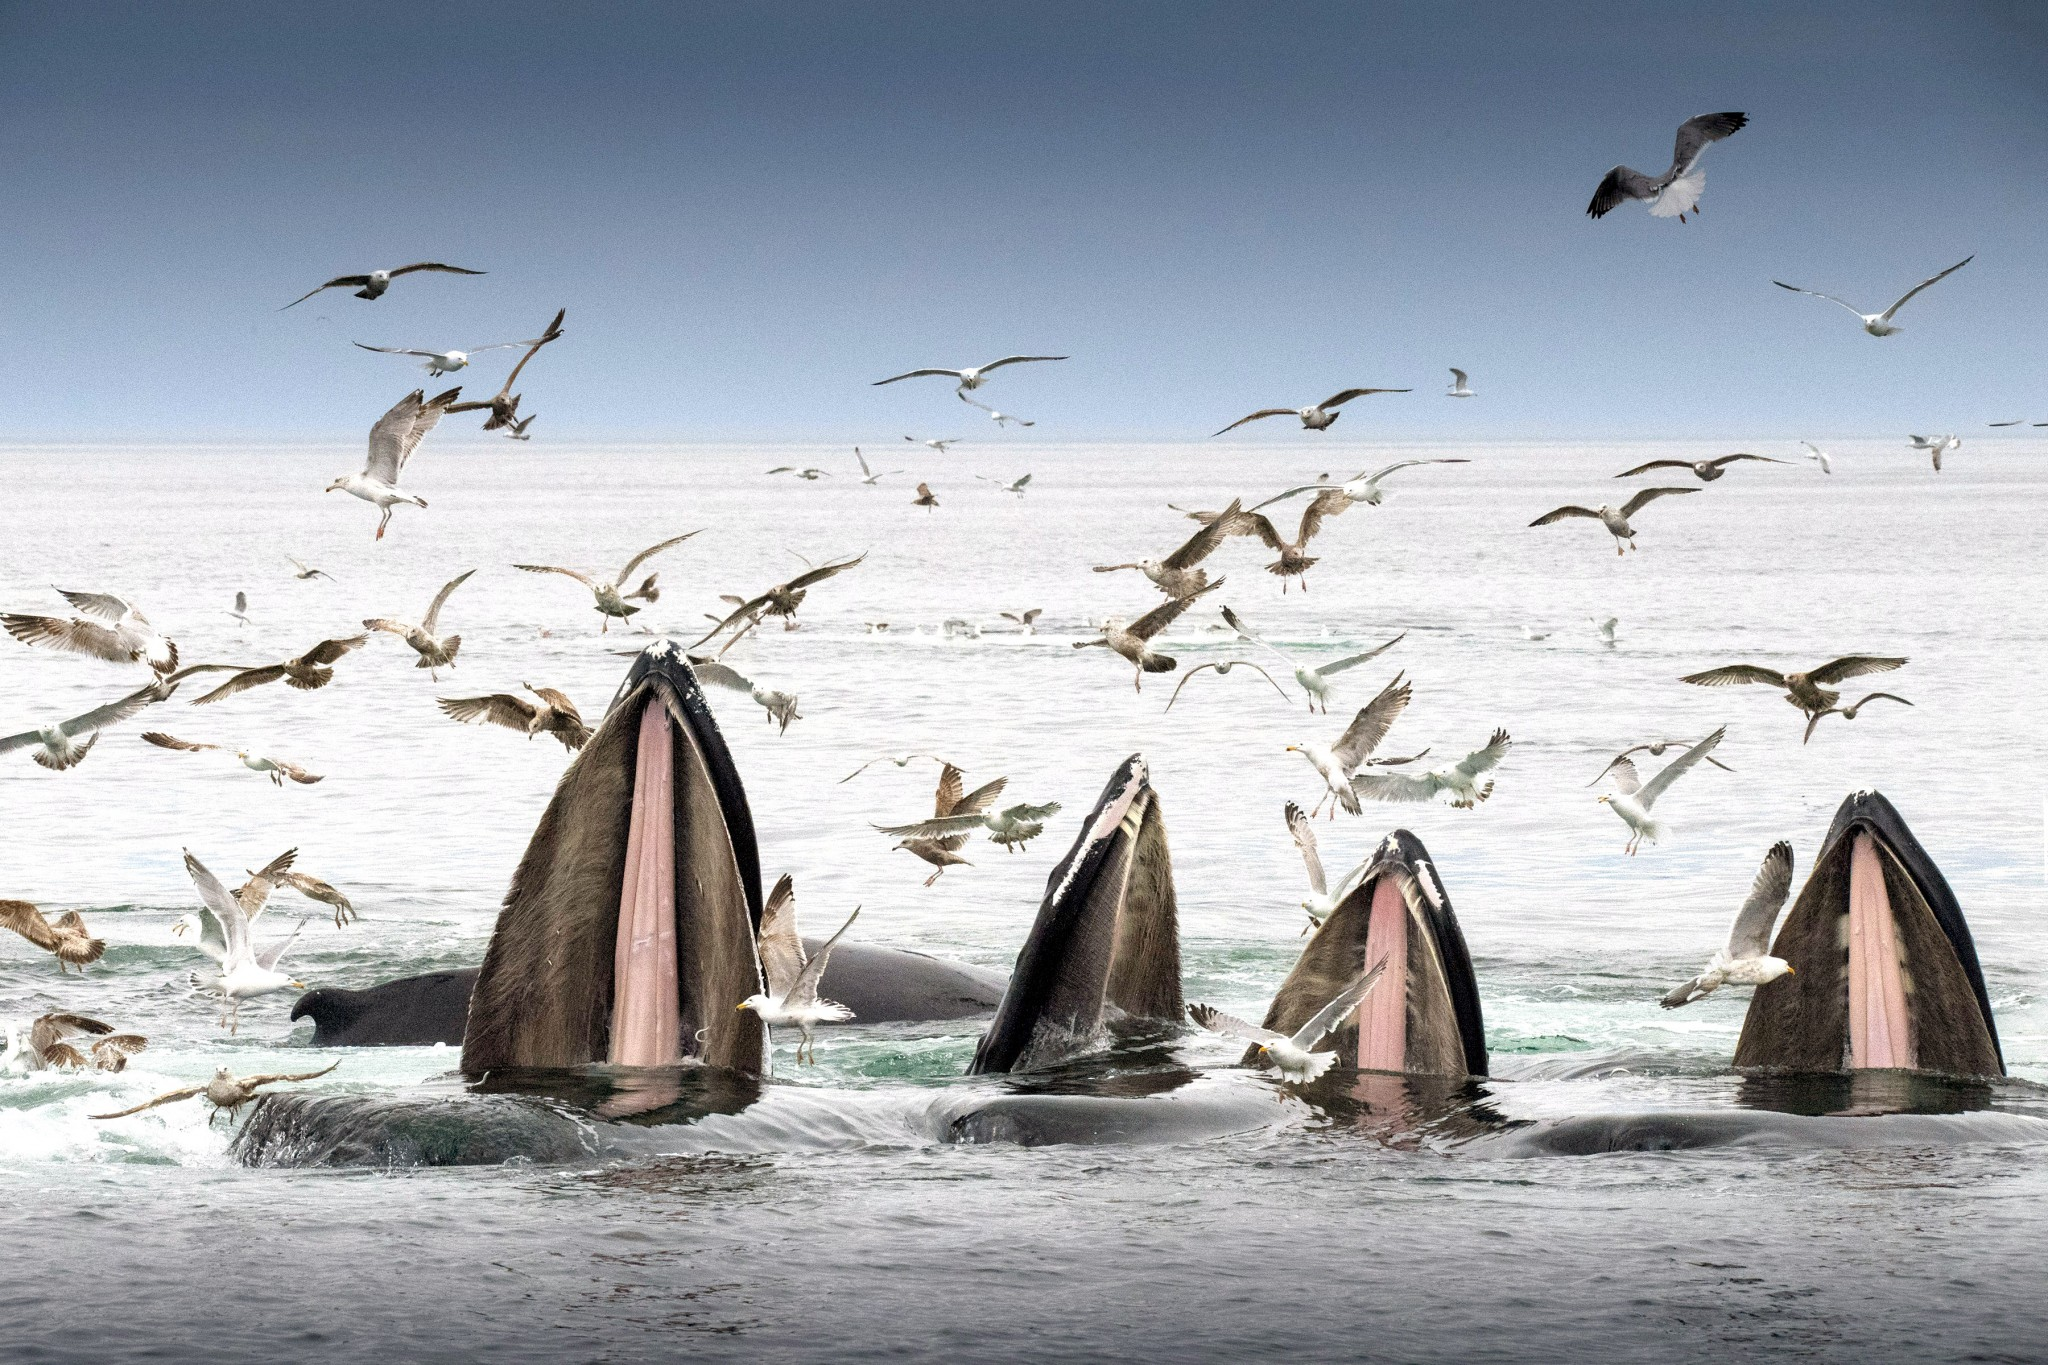 A pod of humpbacks rises to the surface at Stellwagen Bank National Marine Sanctuary at the mouth of Massachusetts Bay. They're teaming up in a feeding tactic called bubble feeding to concentrate and consume sand lance. (Photo by Art Weber)